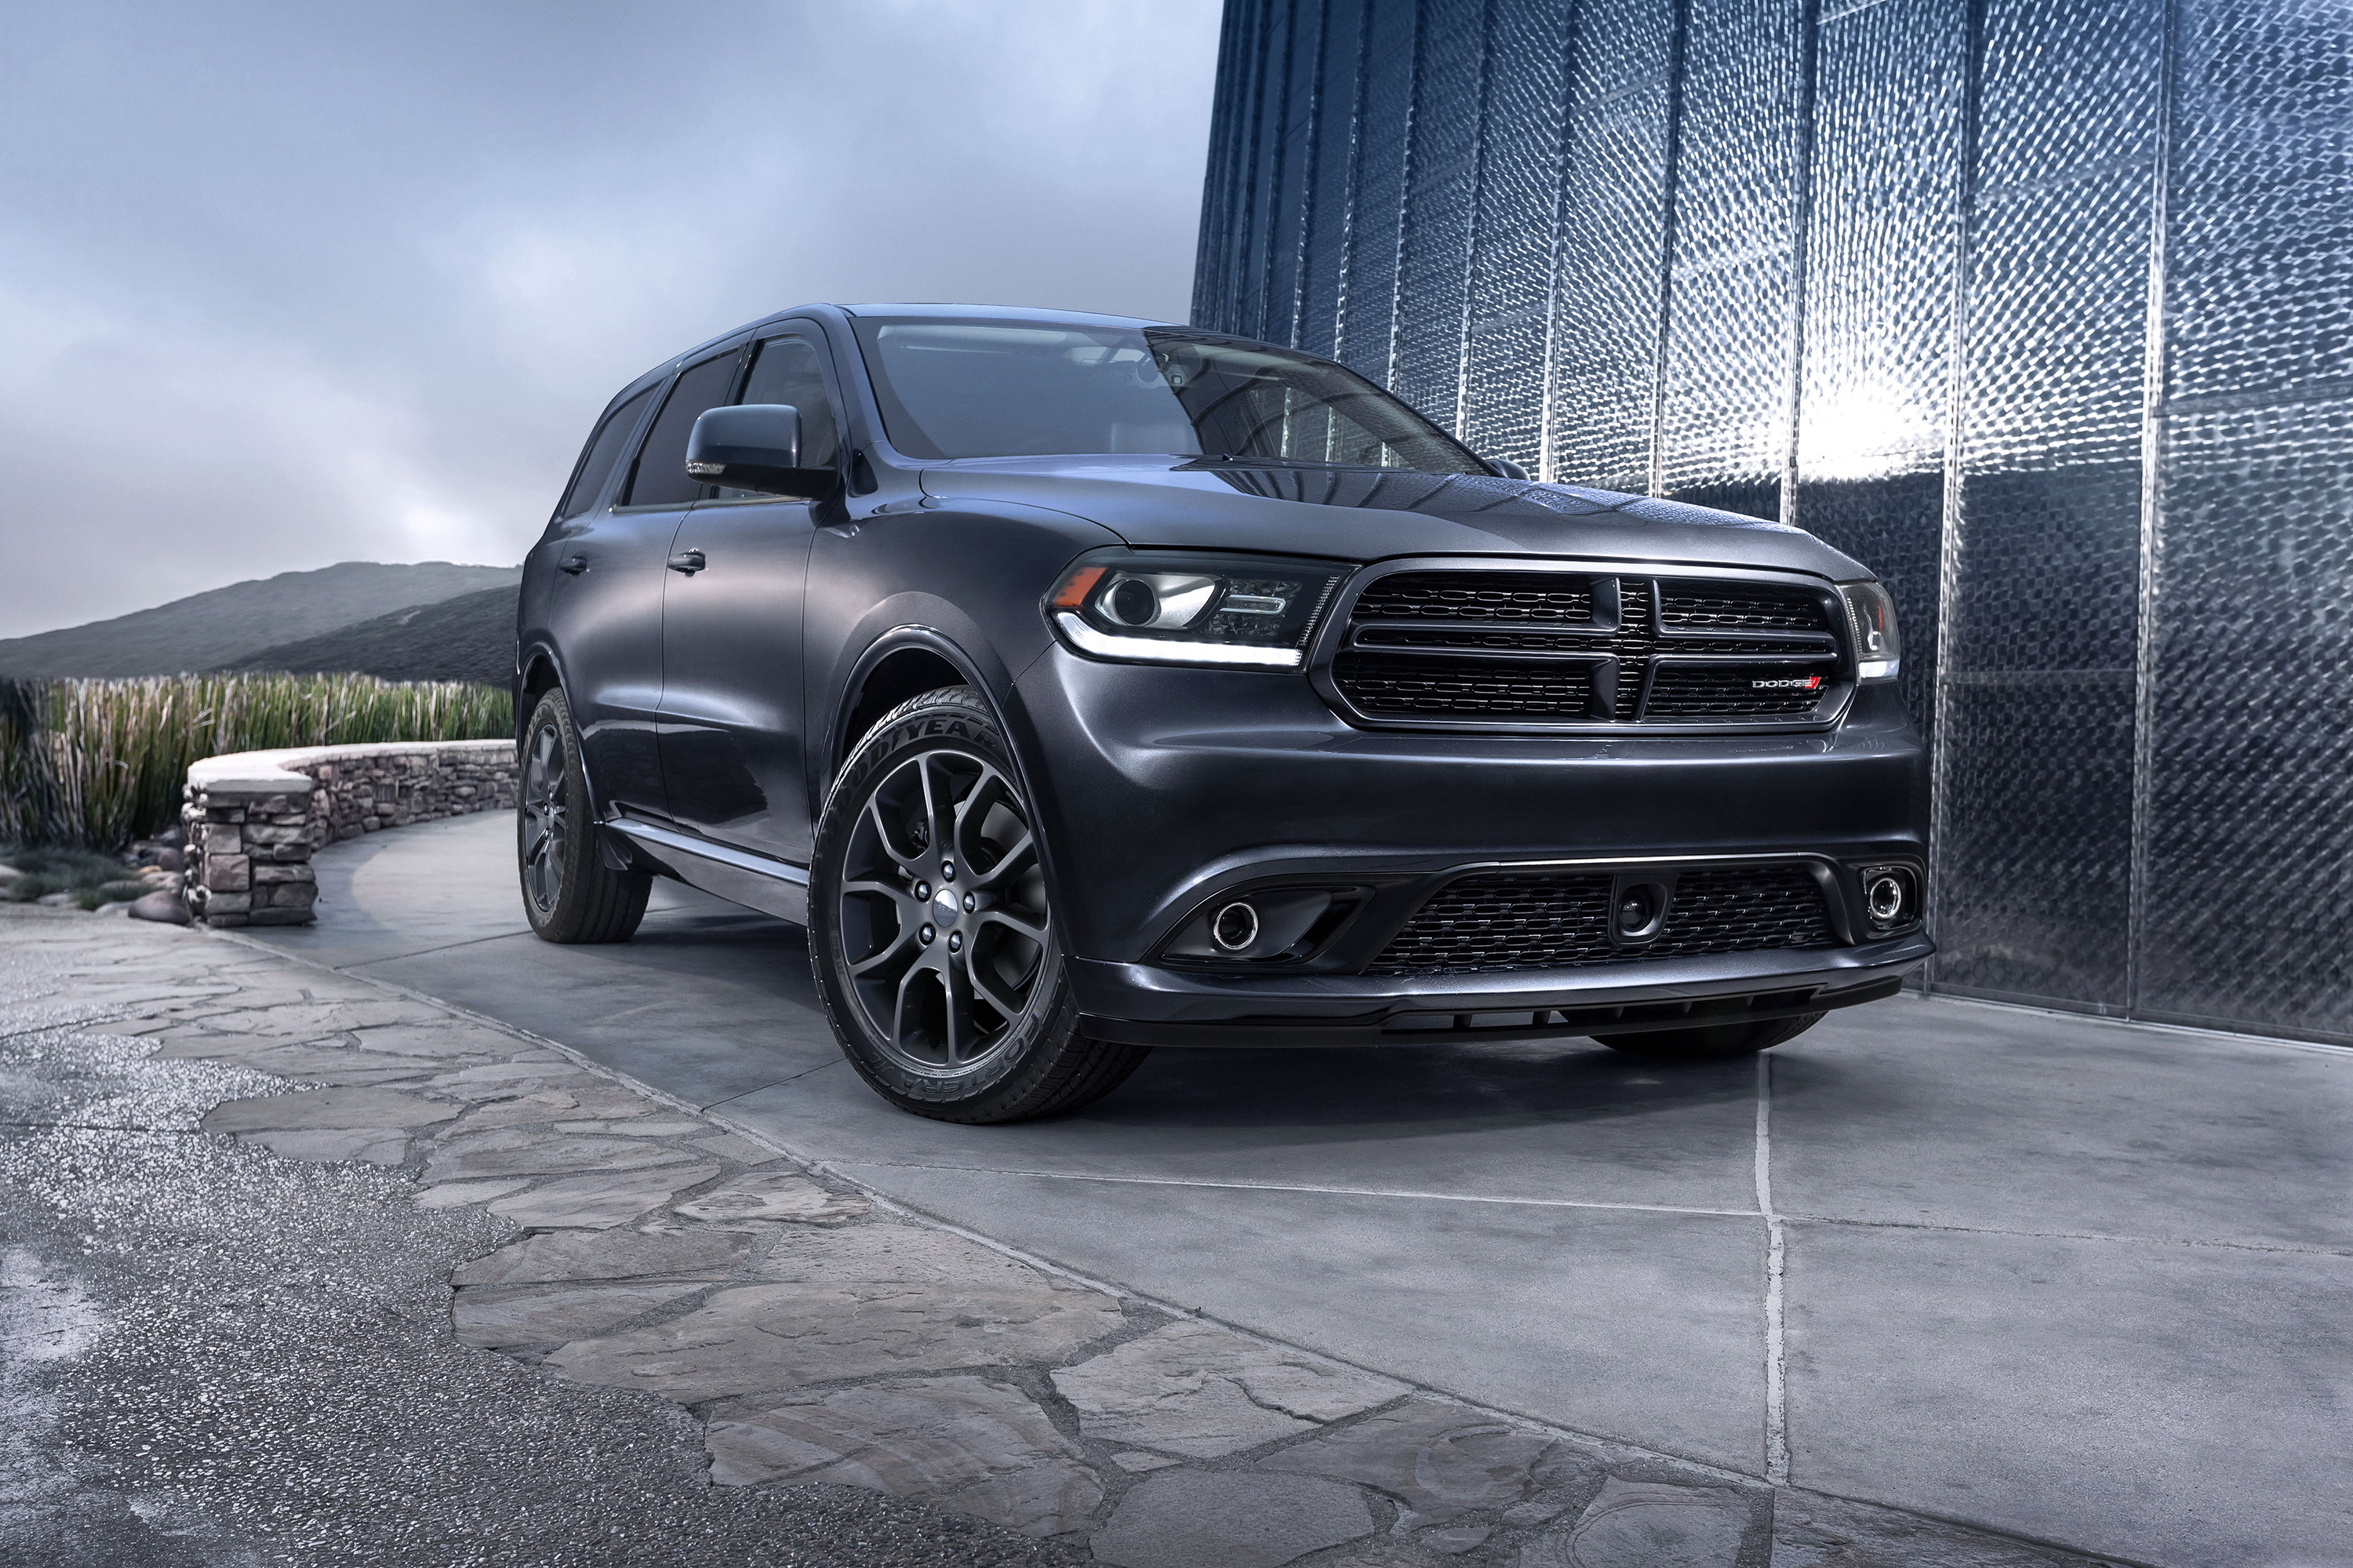 2015 dodge durango r/t review - top speed